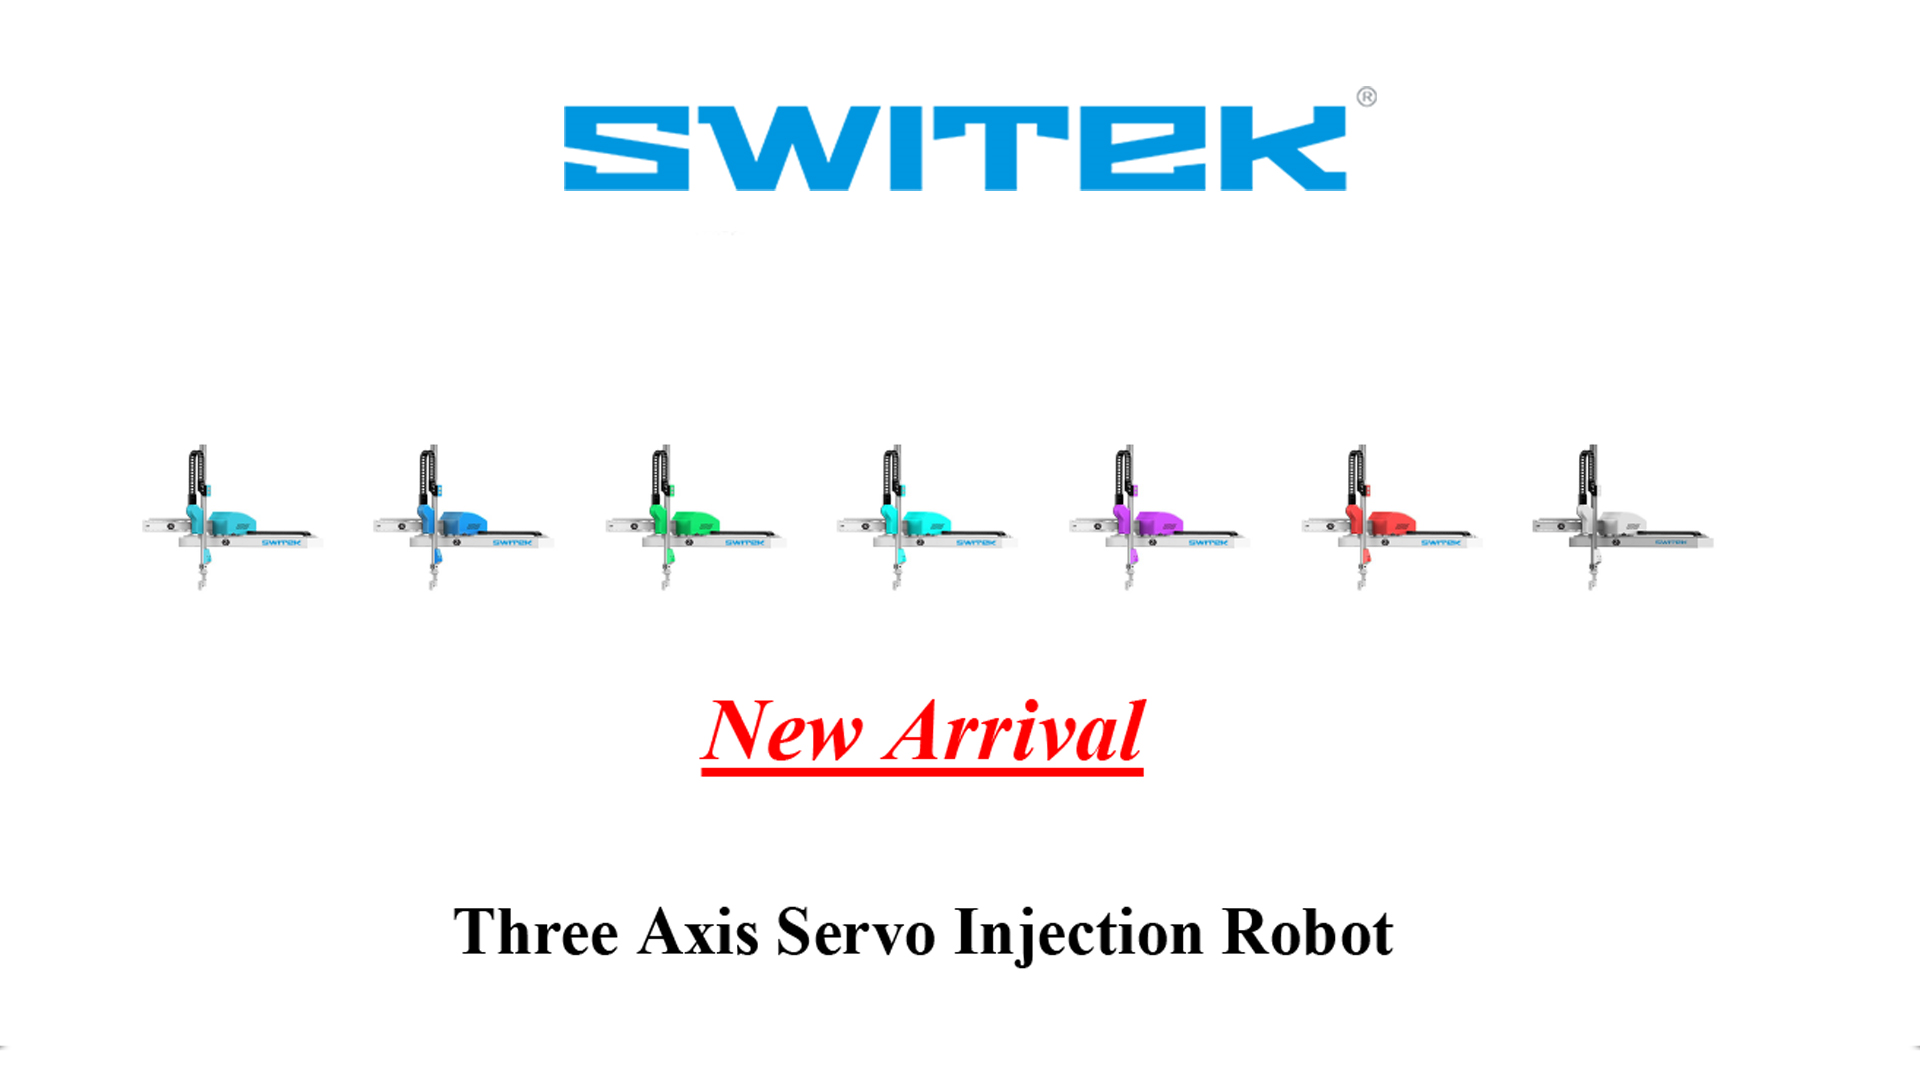 Three Axis Servo Injection Robot